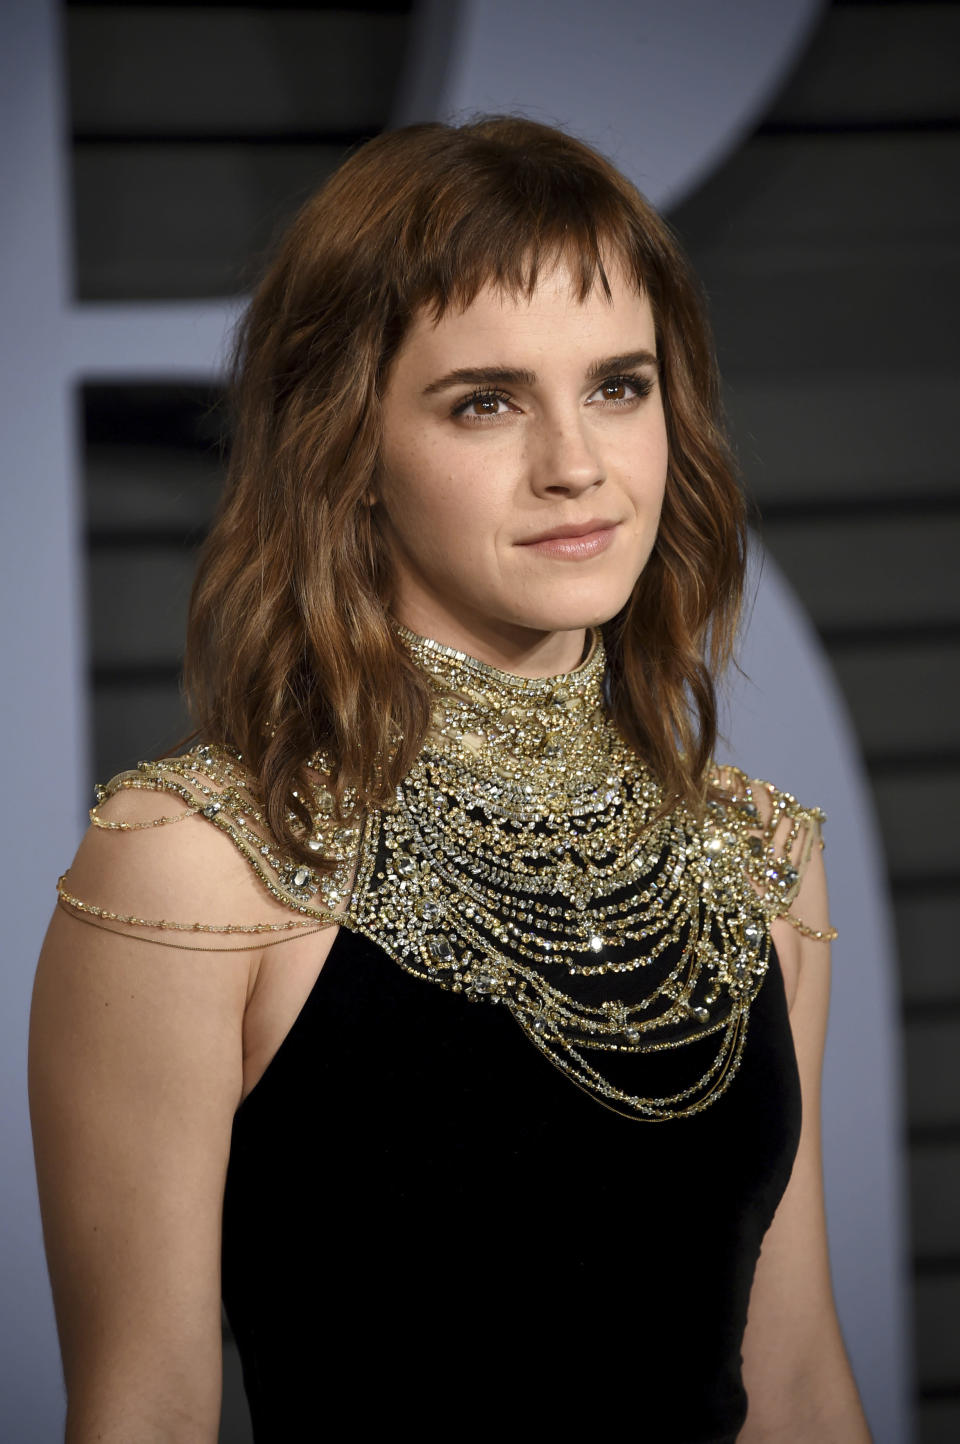 Emma Watson arrives at the Vanity Fair Oscar Party in Beverly Hills, California, 2018. (Photo: van Agostini/Invision/AP)